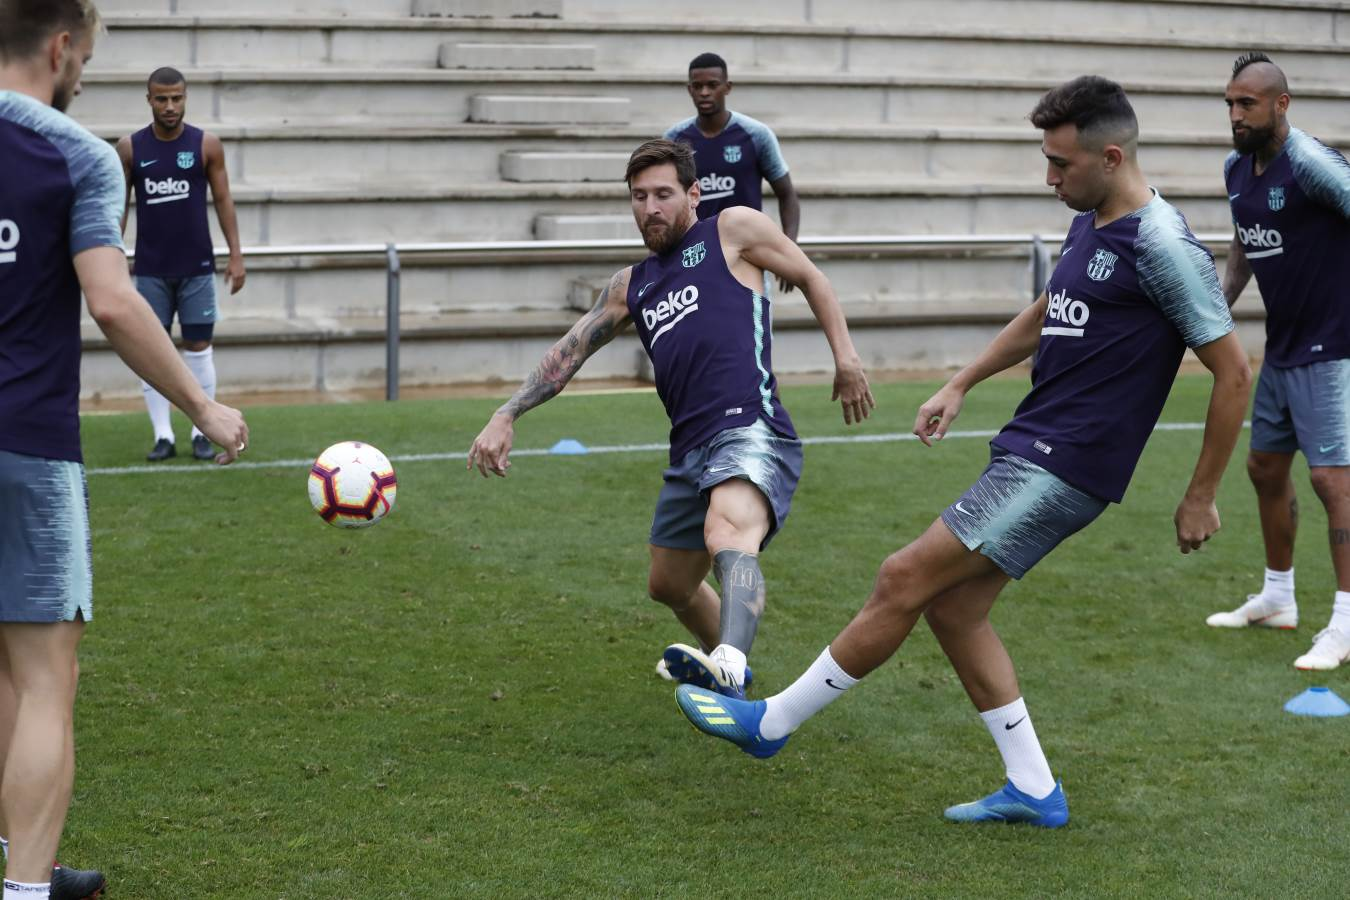 ��⚽ Training ahead of the first league game of the season, bring it on!  https://t.co/qbkWV5tq1Y